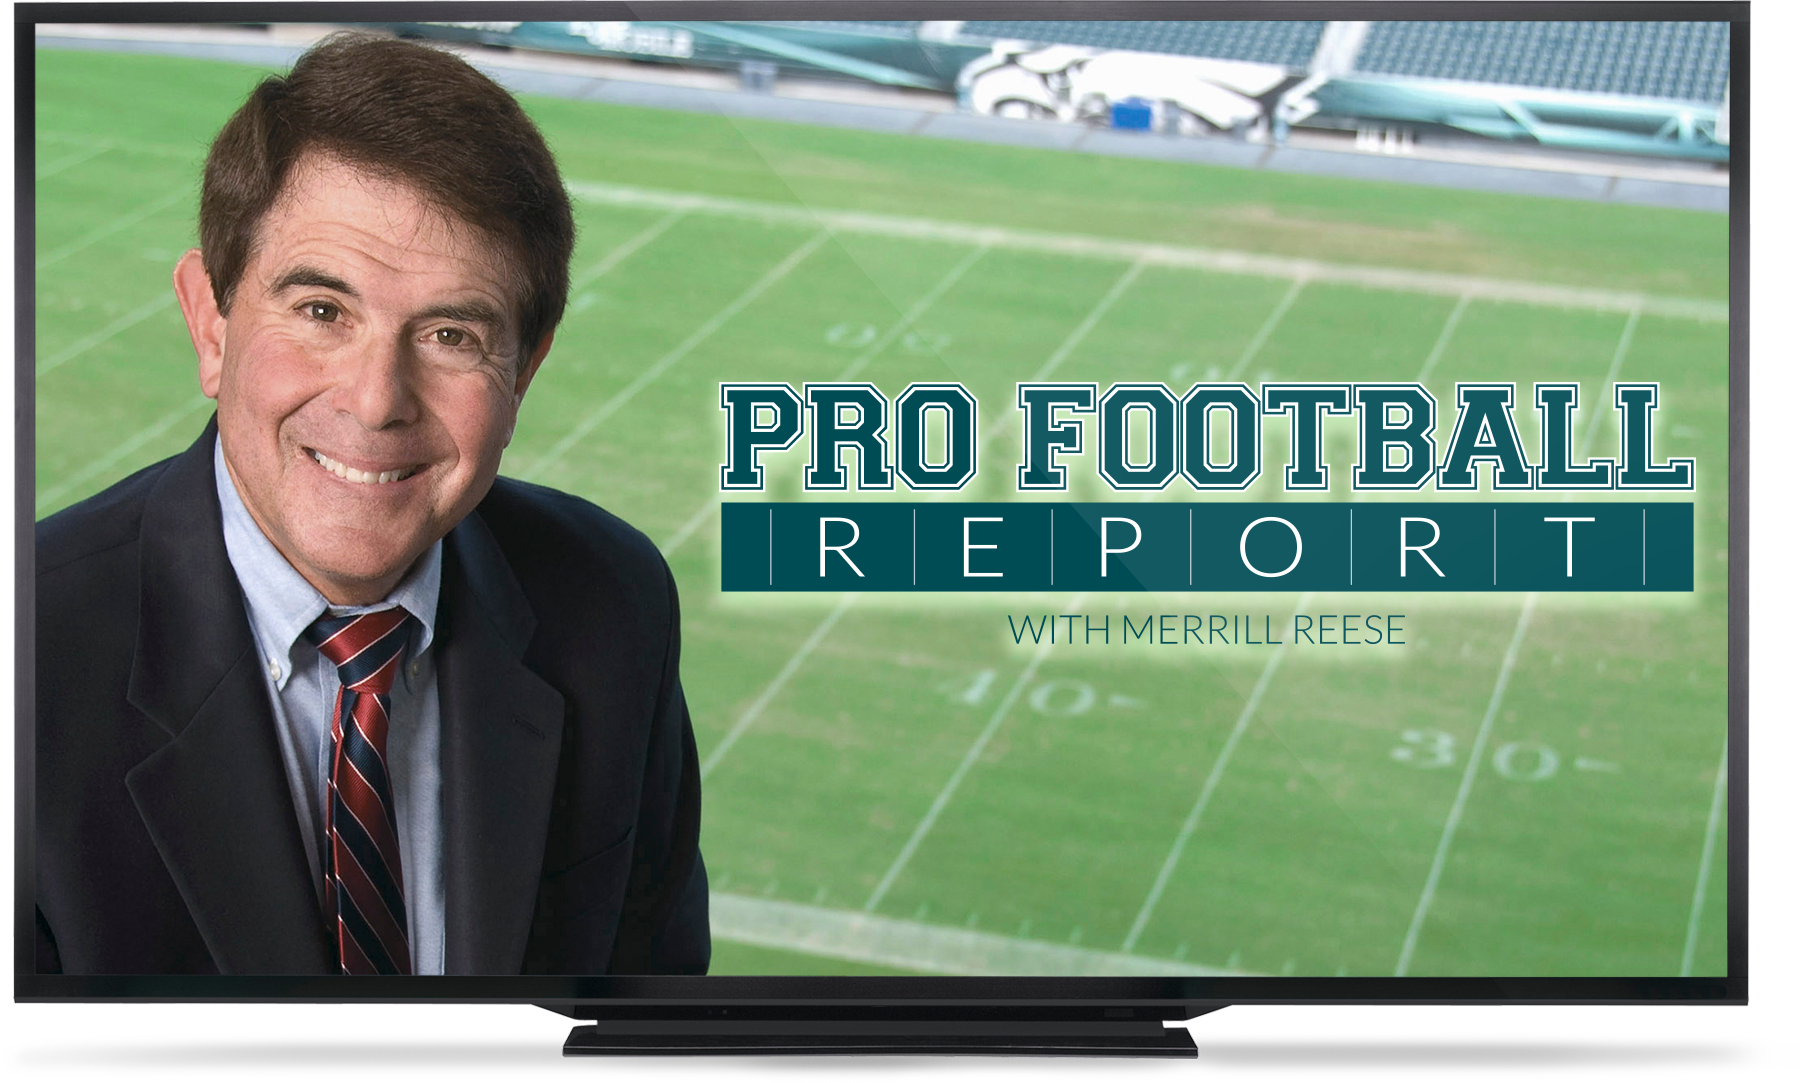 Watch the Gwynedd Mercy University Pro Football Report presented by BCWSA with Merrill Reese streaming live on WBCB TV.